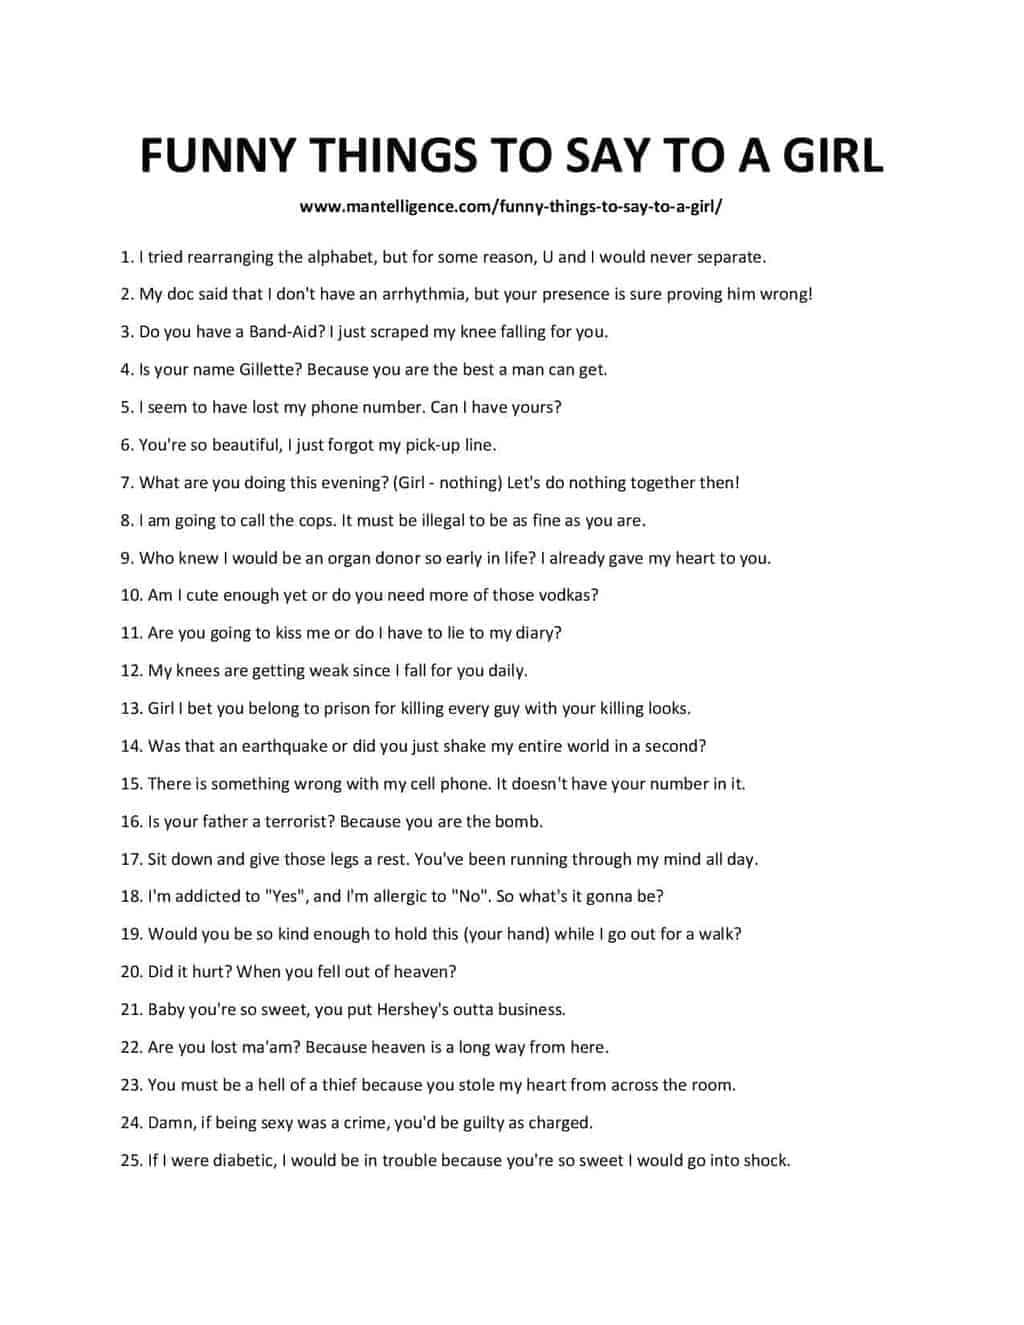 FUNNY THINGS TO SAY TO A GIRL (1)-page-001